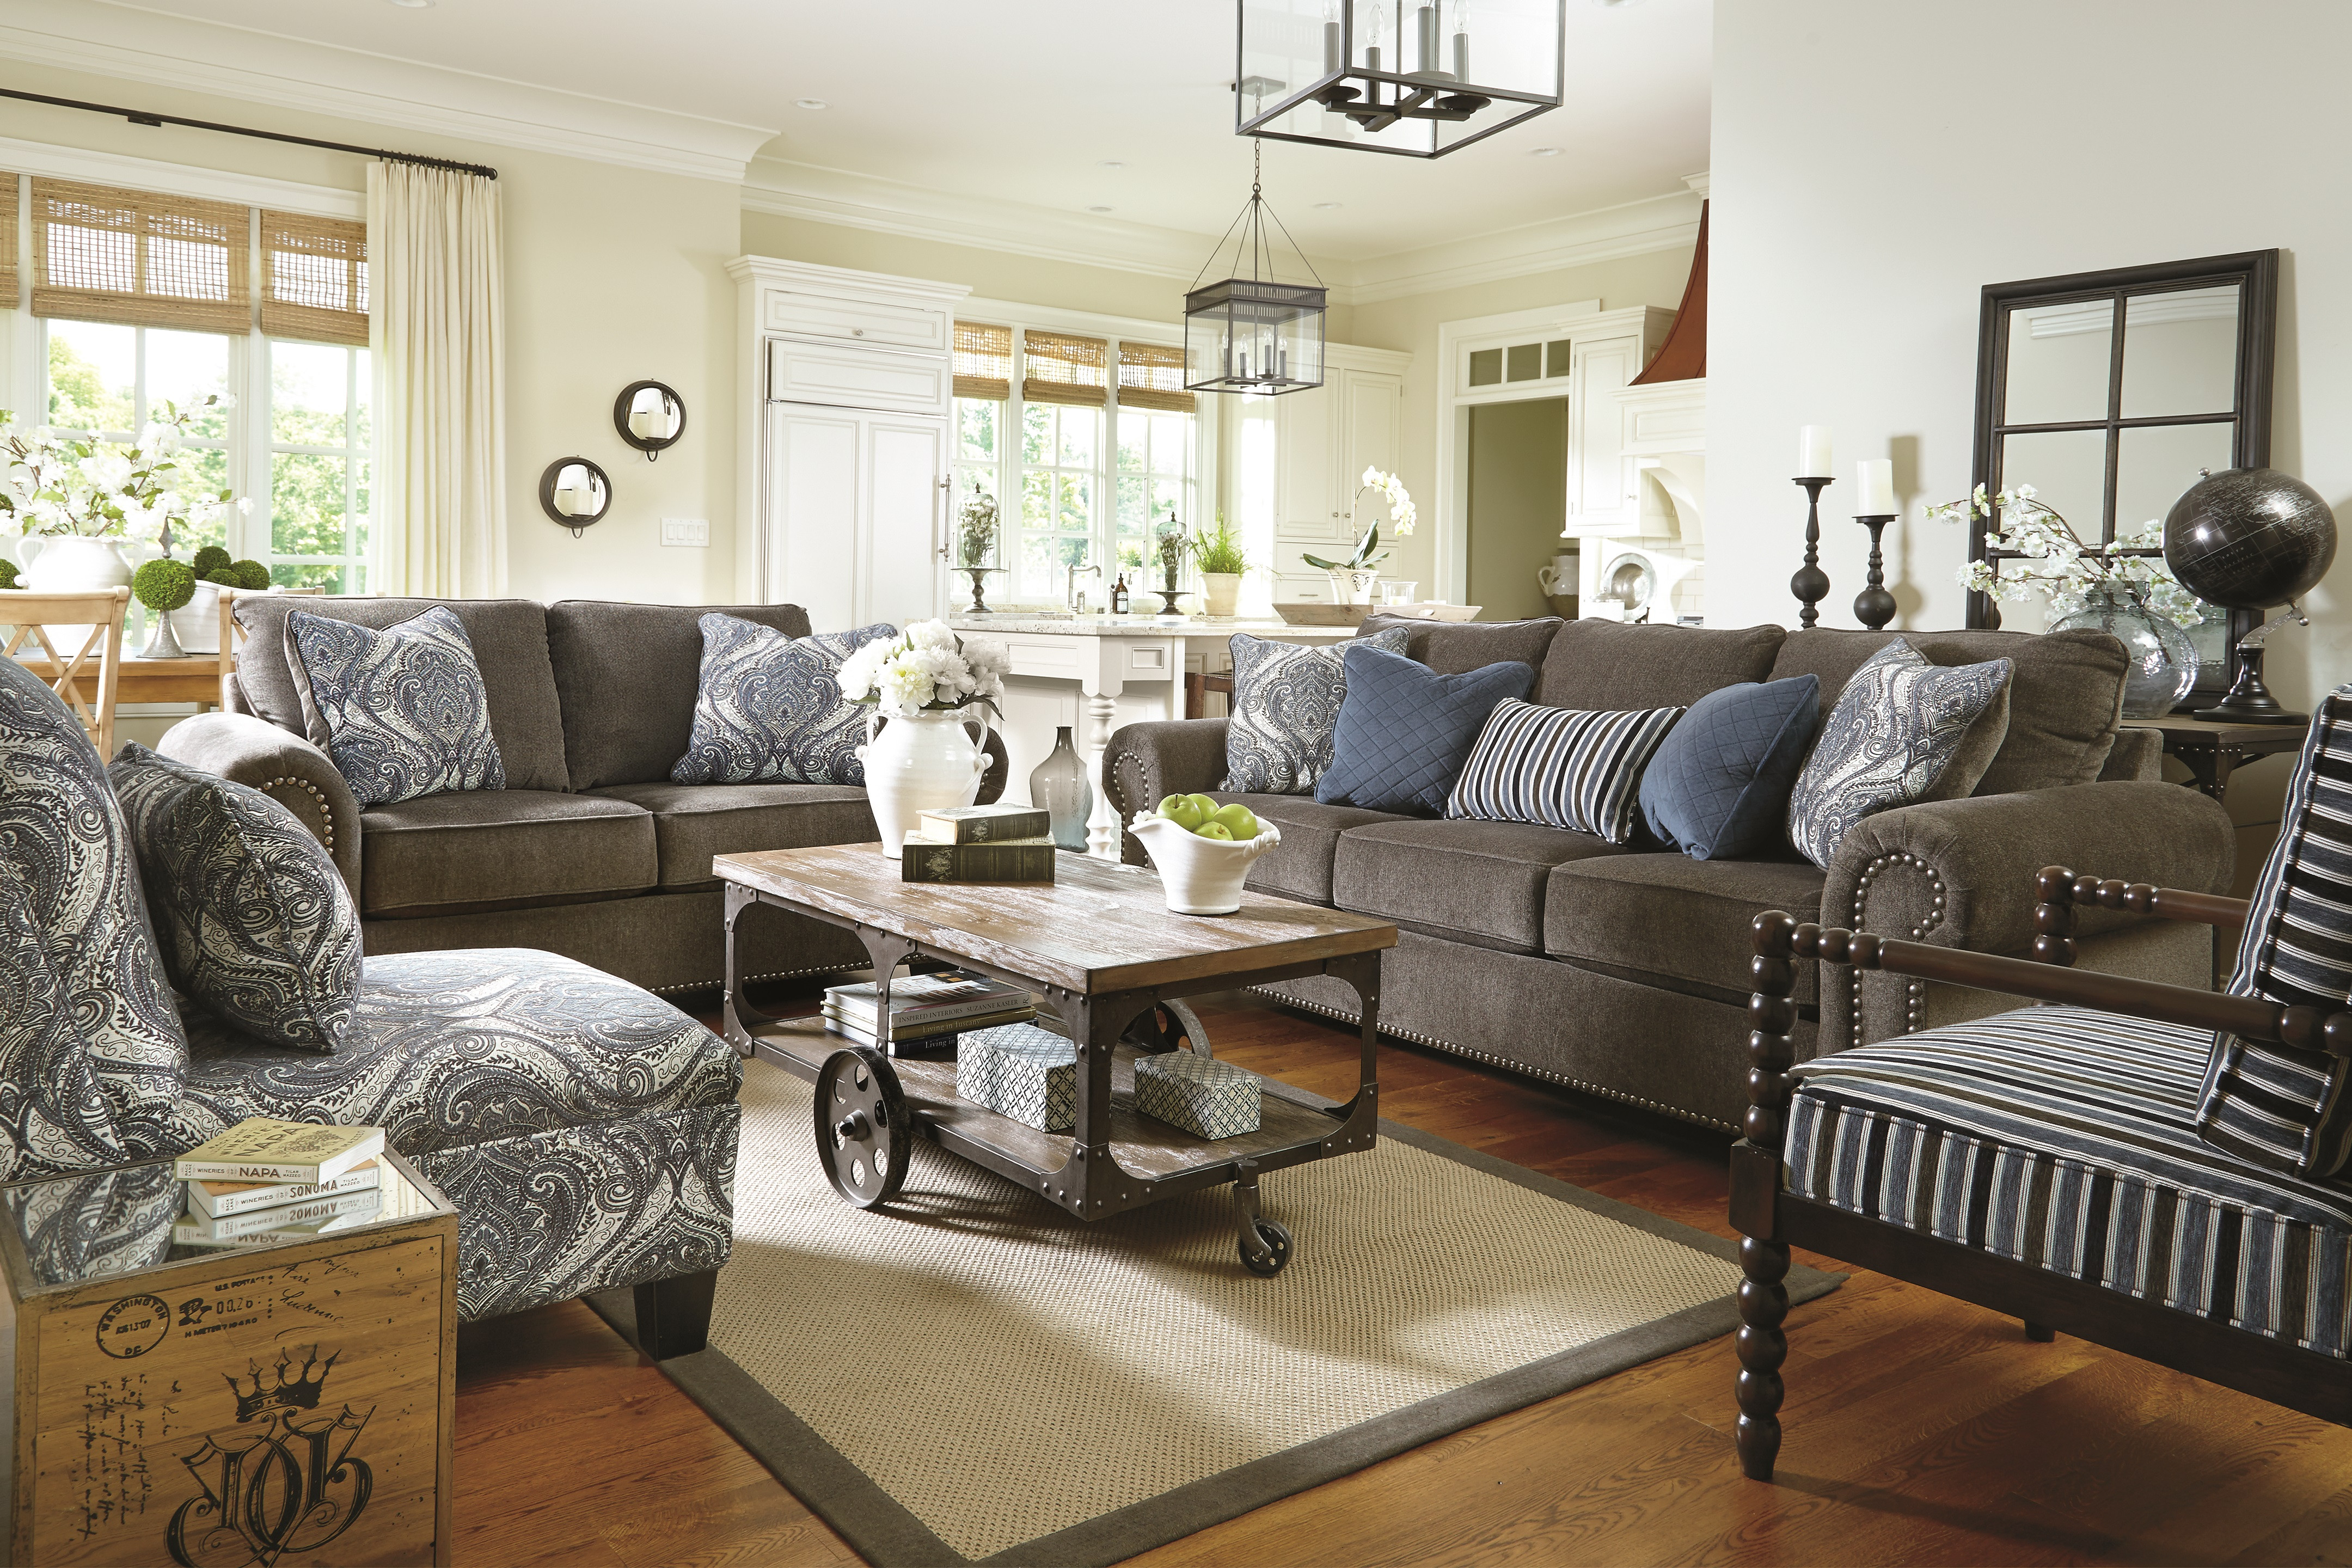 Best ideas about Family Room Couches . Save or Pin Living Room Furniture Layout Guide & Plan Ideas Now.